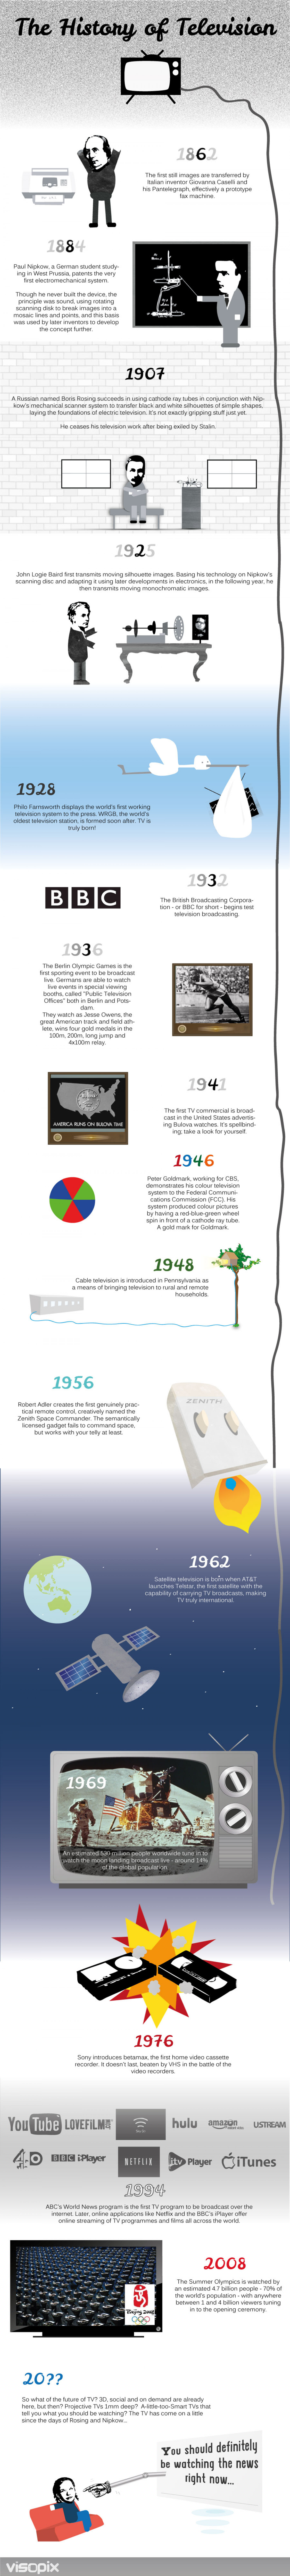 The History of Television Infographic